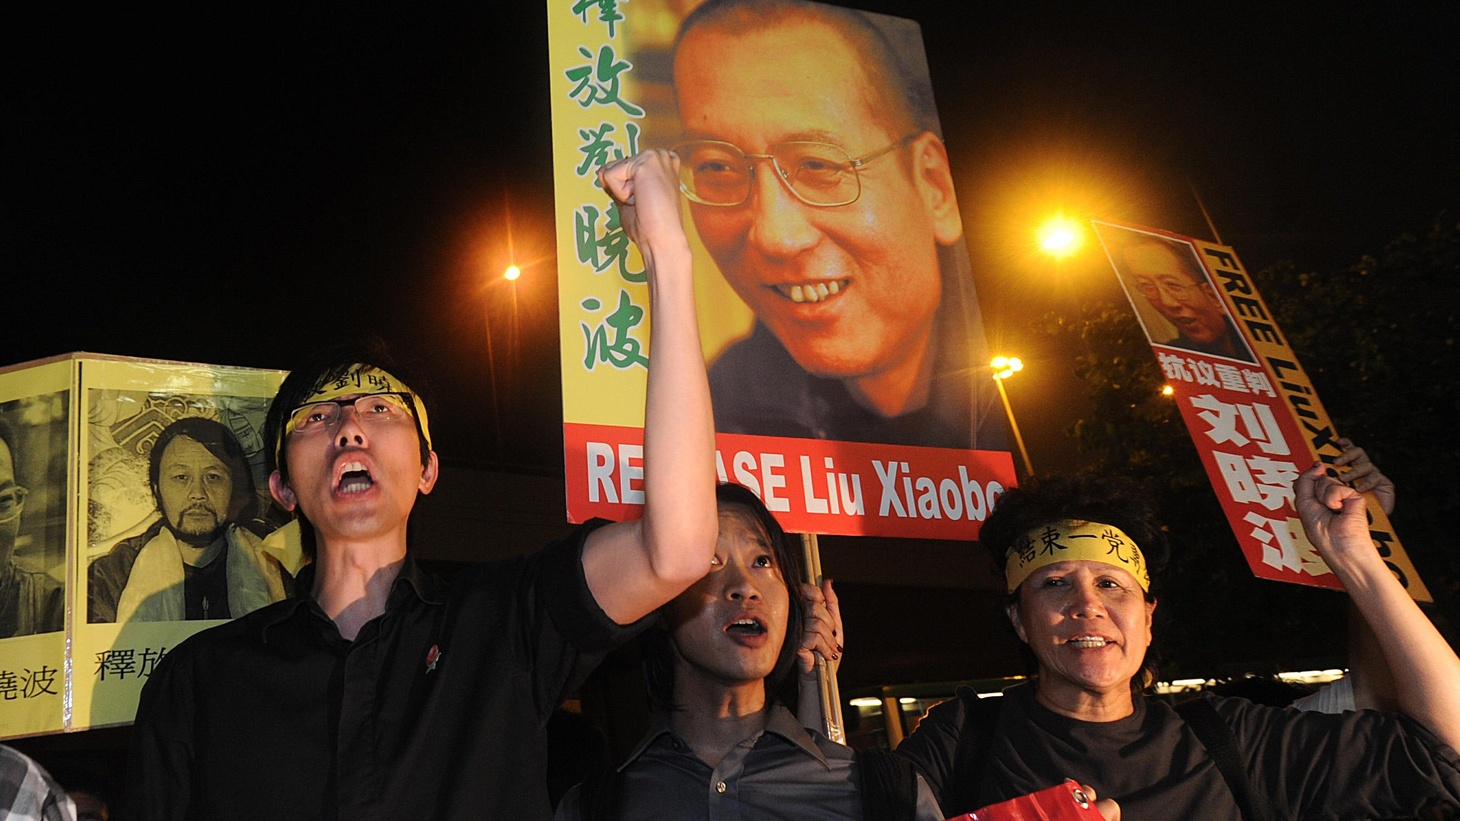 Last year it was Barack Obama. This year it's imprisoned Chinese dissident Liu Xiaobo. We hear about the Nobel Peace Prize, who gets it and why. Also, the Bank of America halts its foreclosures across the US, and the legacy of John Lennon.